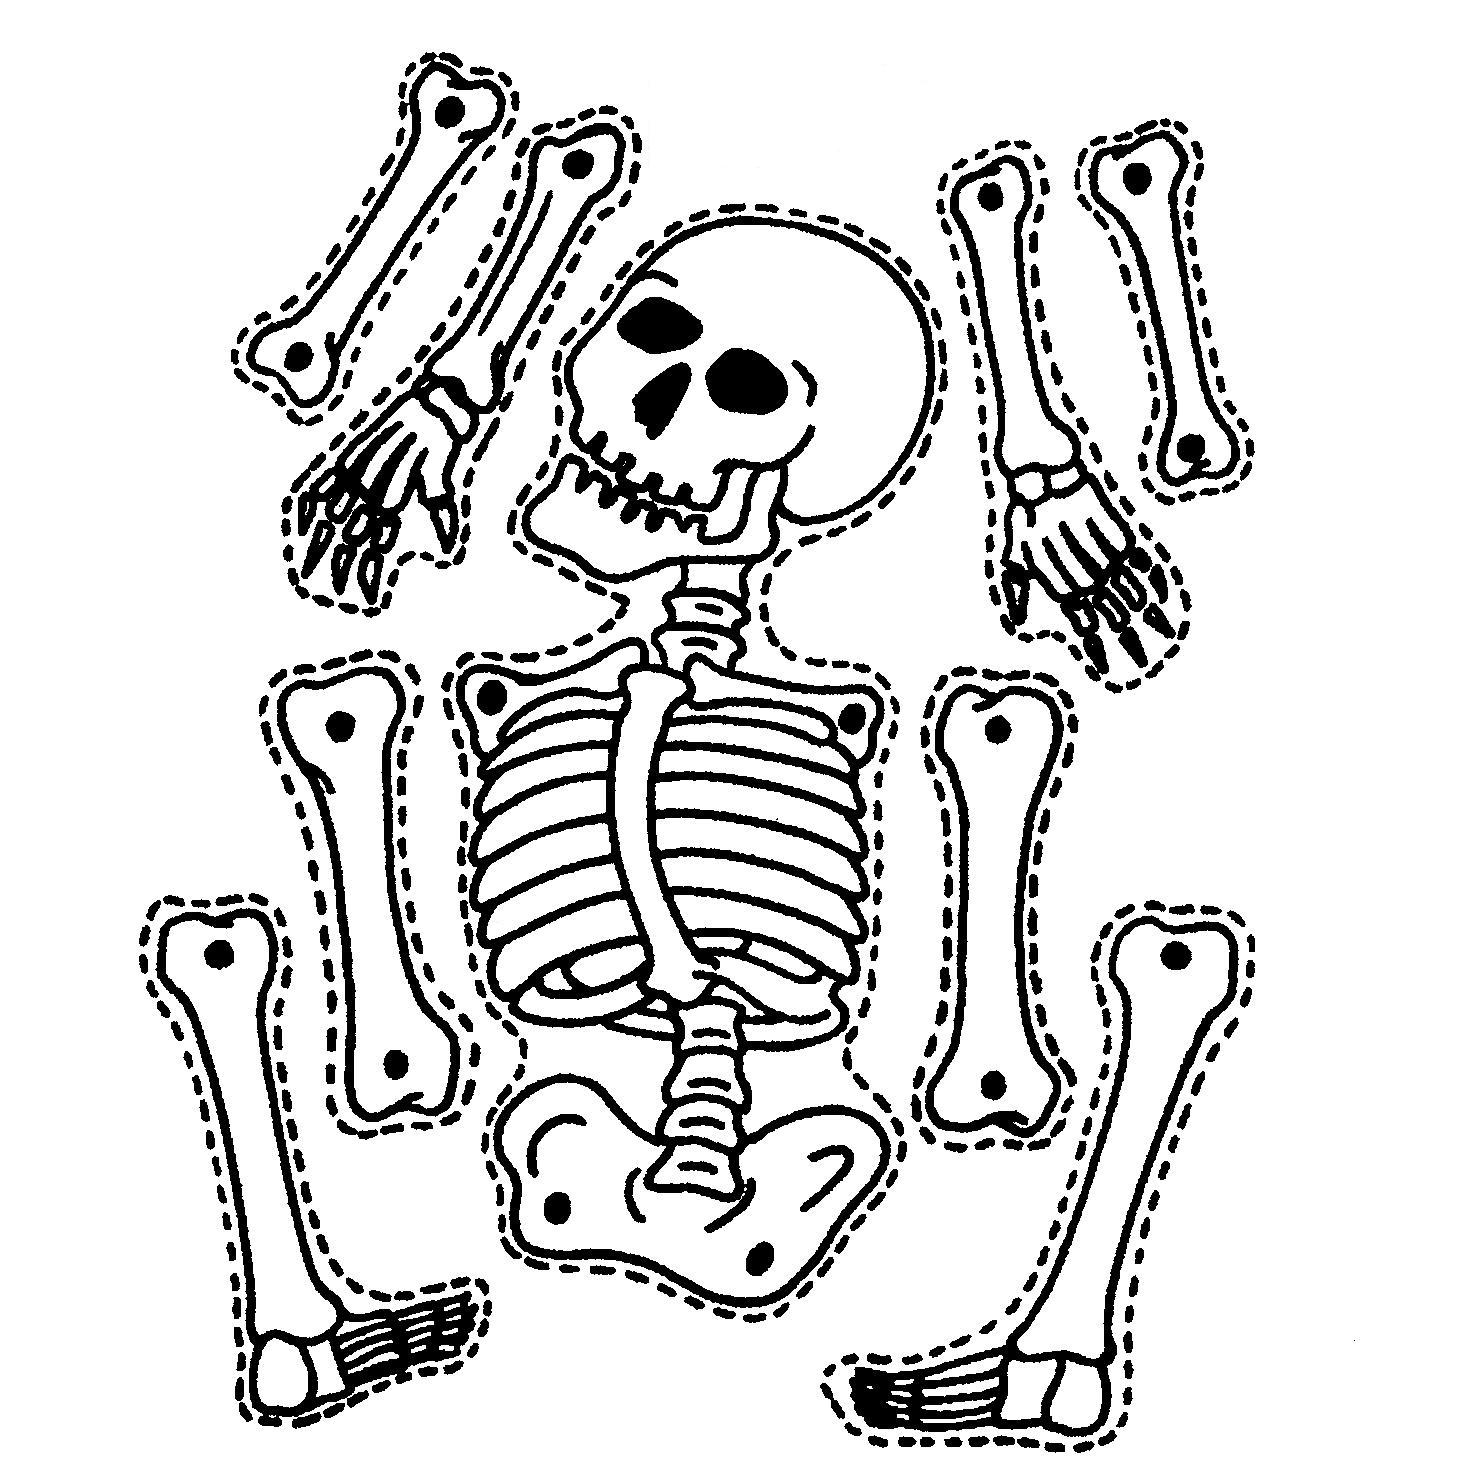 5 Images of Skeleton Outline Printable